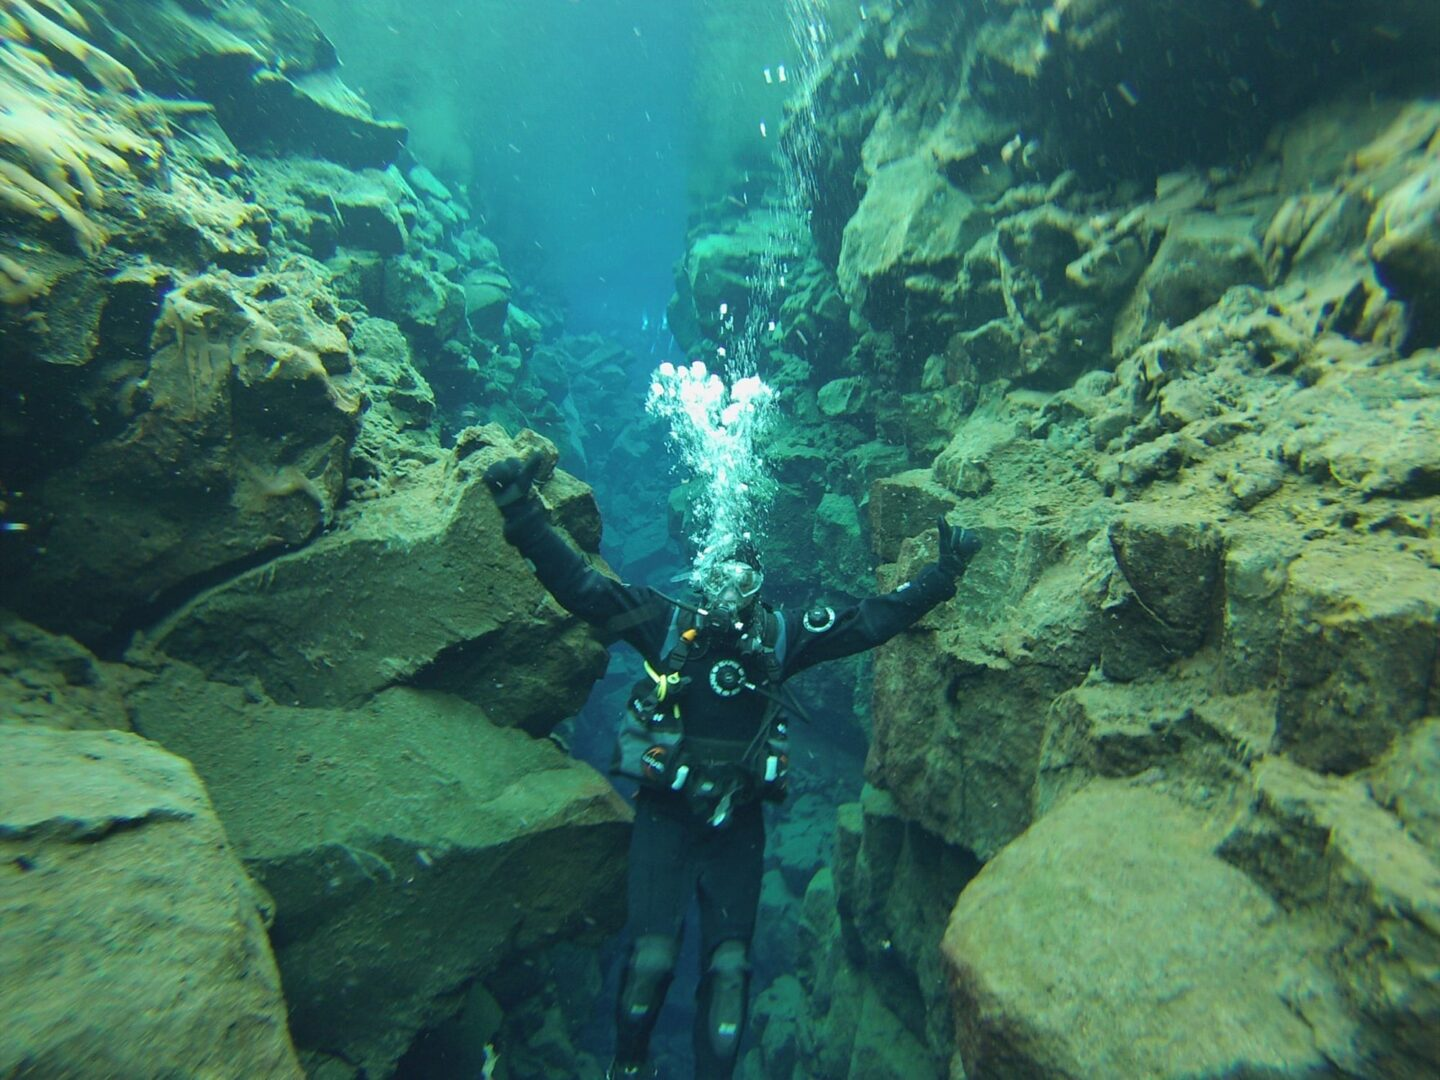 Touching the tectonic plates of America and Europe, Iceland